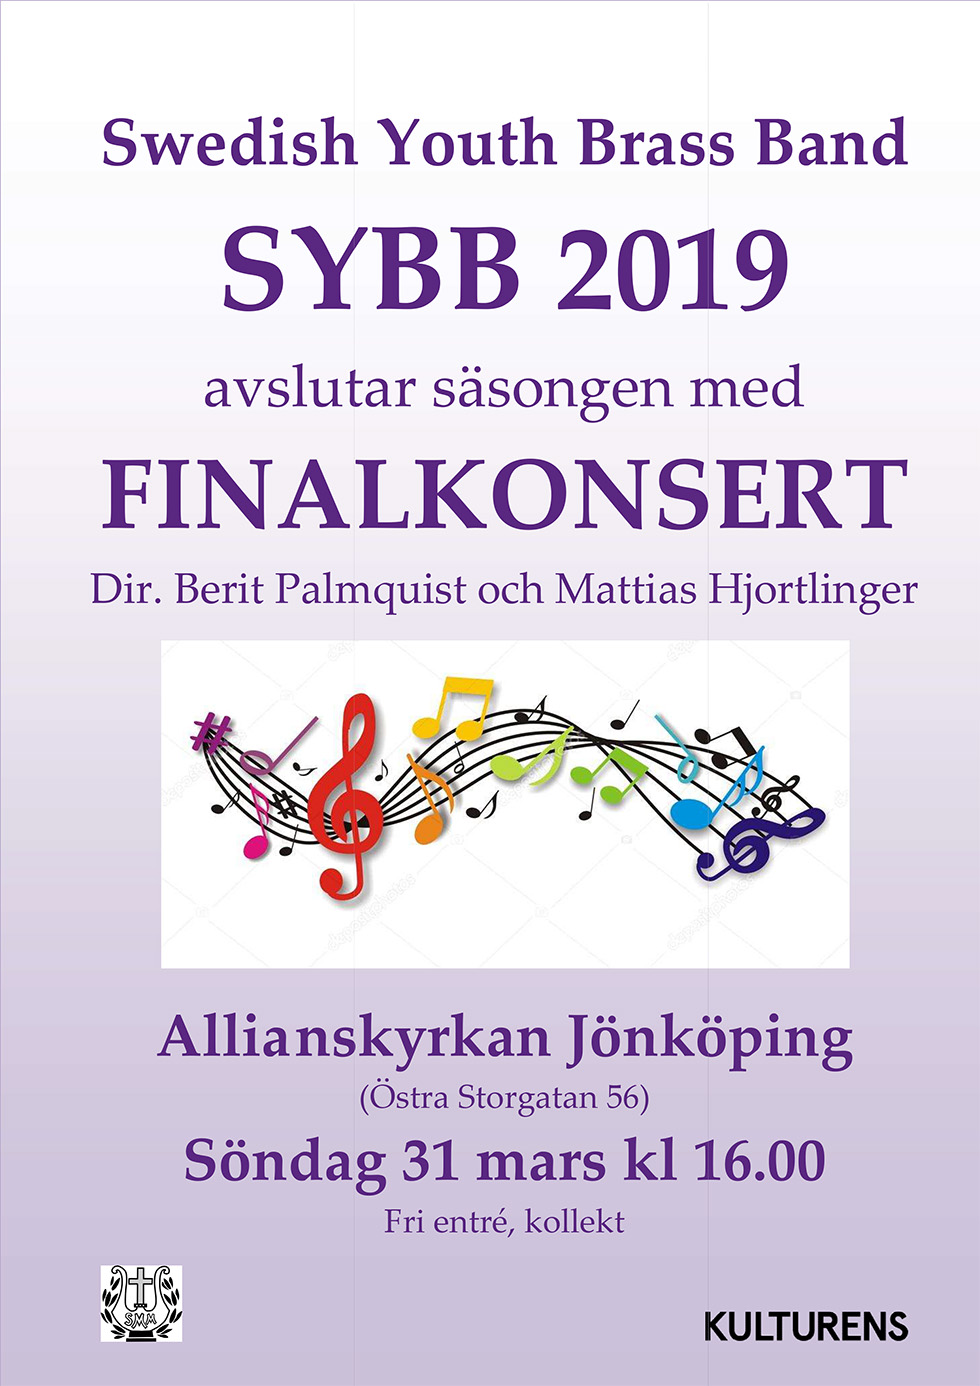 Swedish Youth Brass Band ger finalkonsert